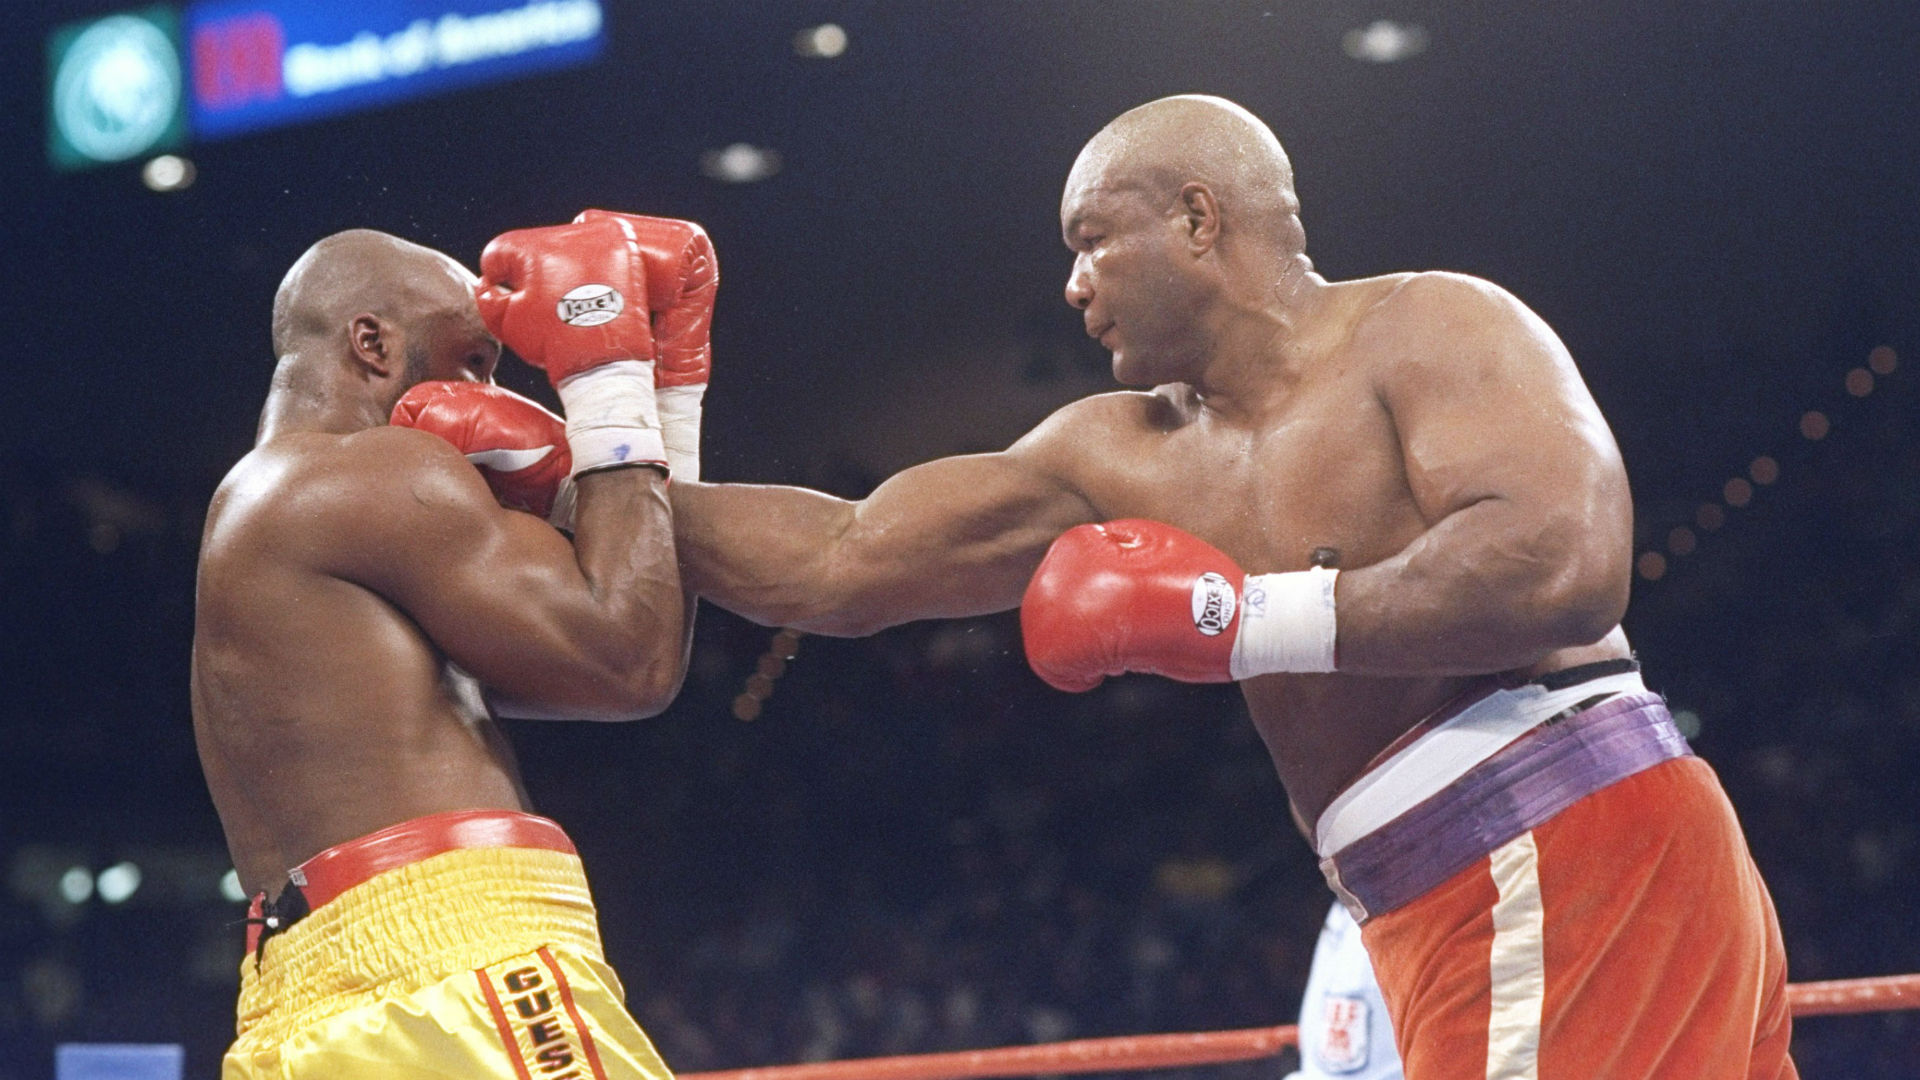 Tyson v Jones Jr: George Foreman, Sugar Ray Leonard and more famous comeback stories in boxing